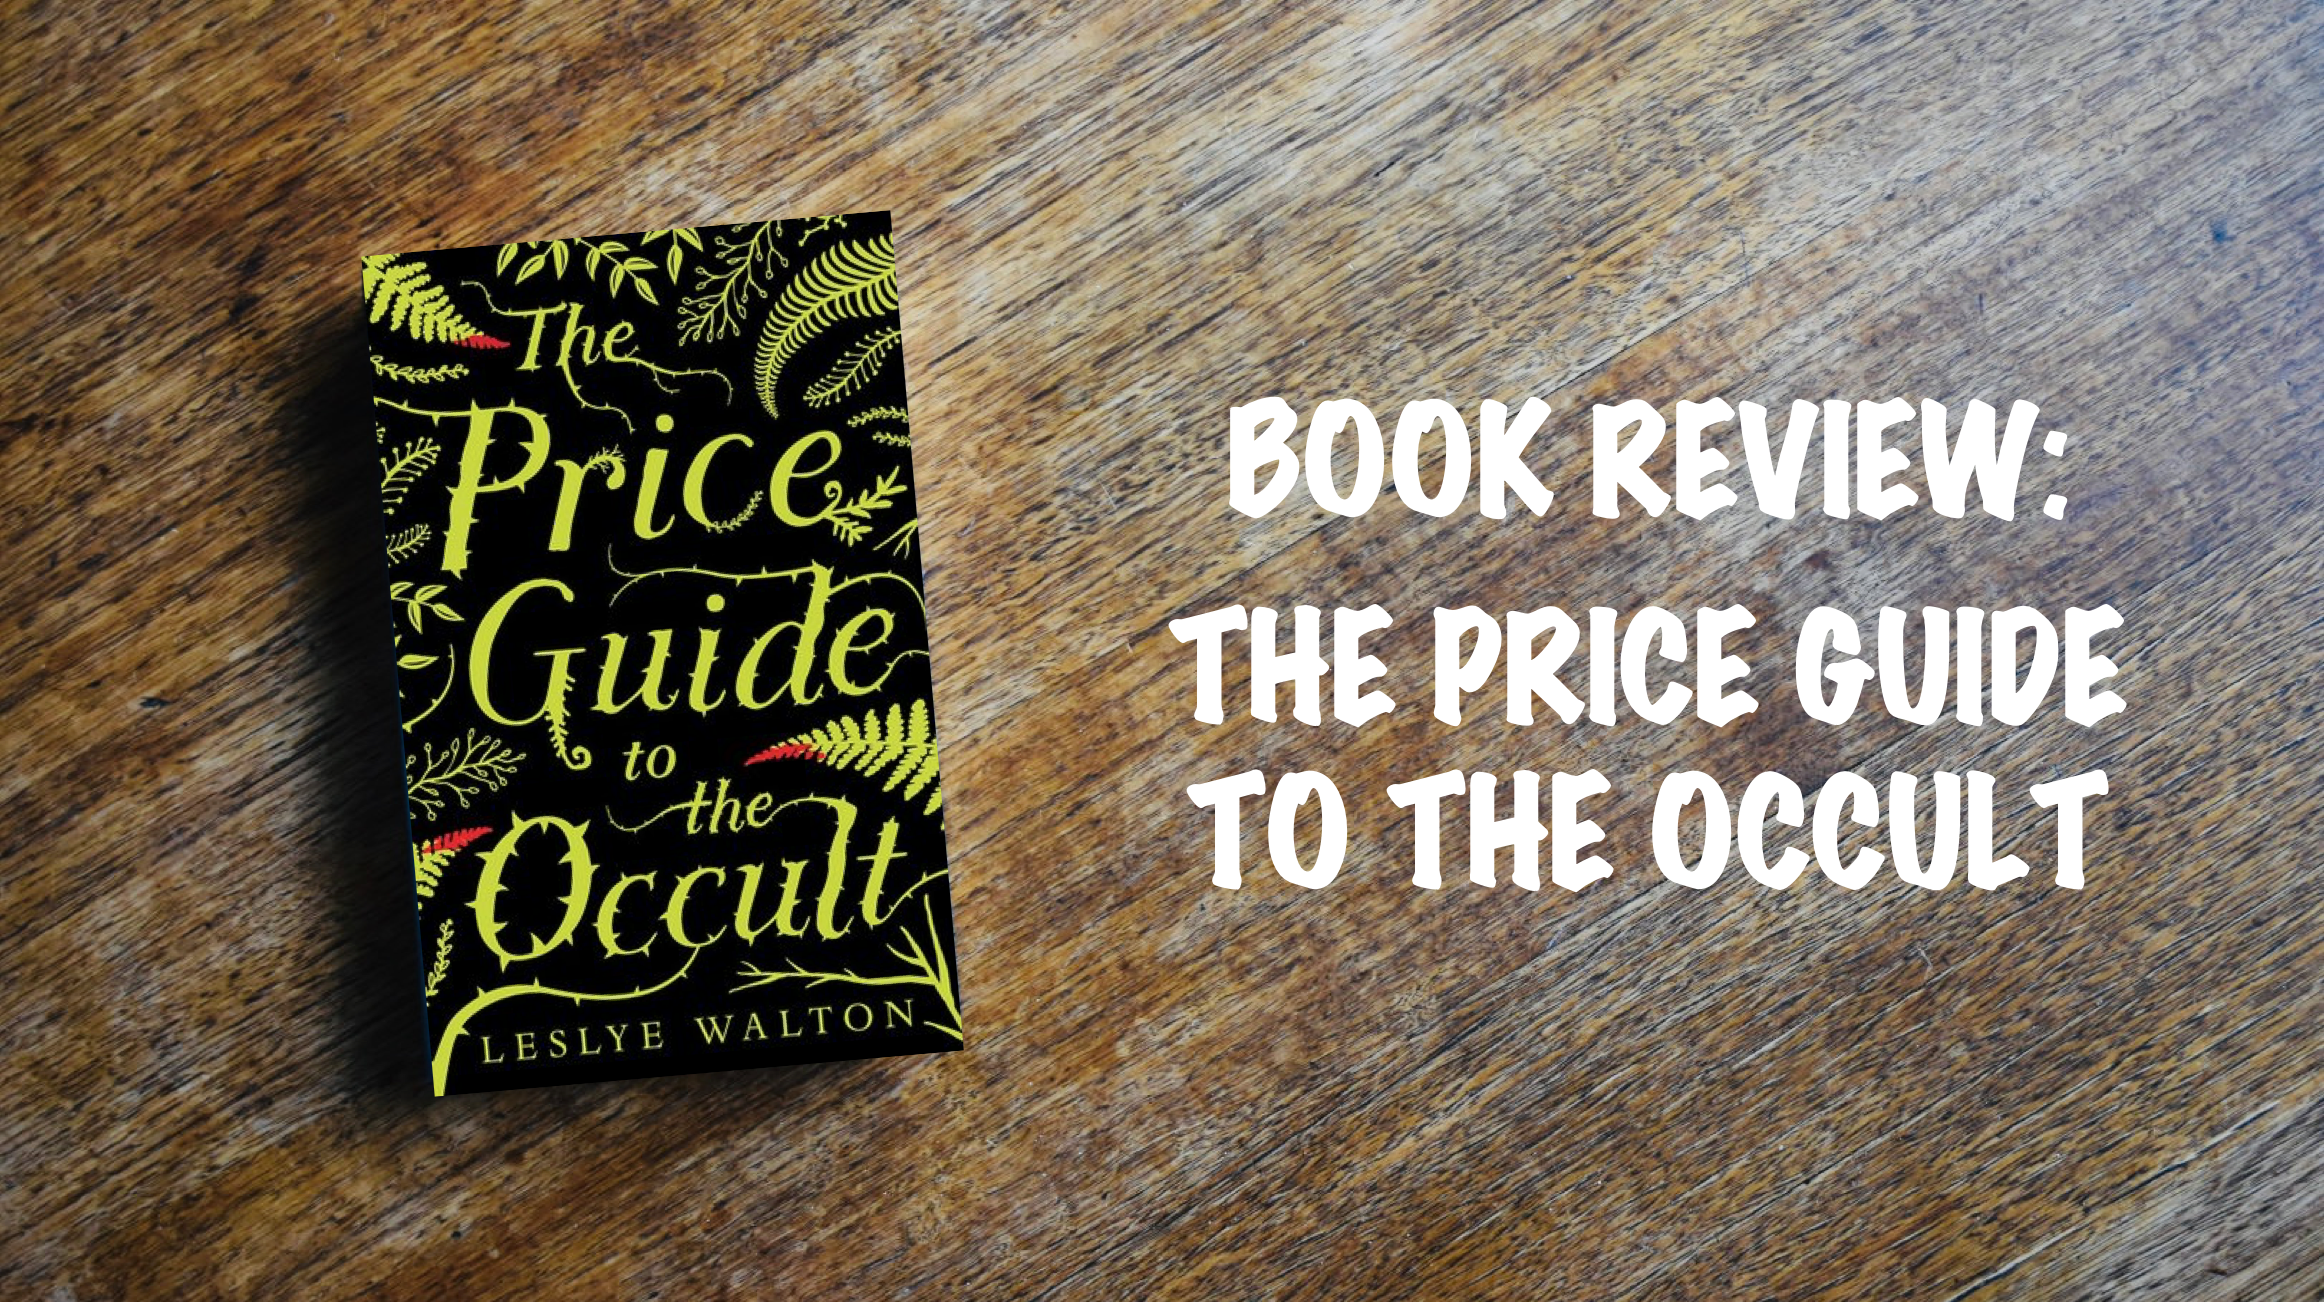 Book Review Banner: The Price Guide to the Occult